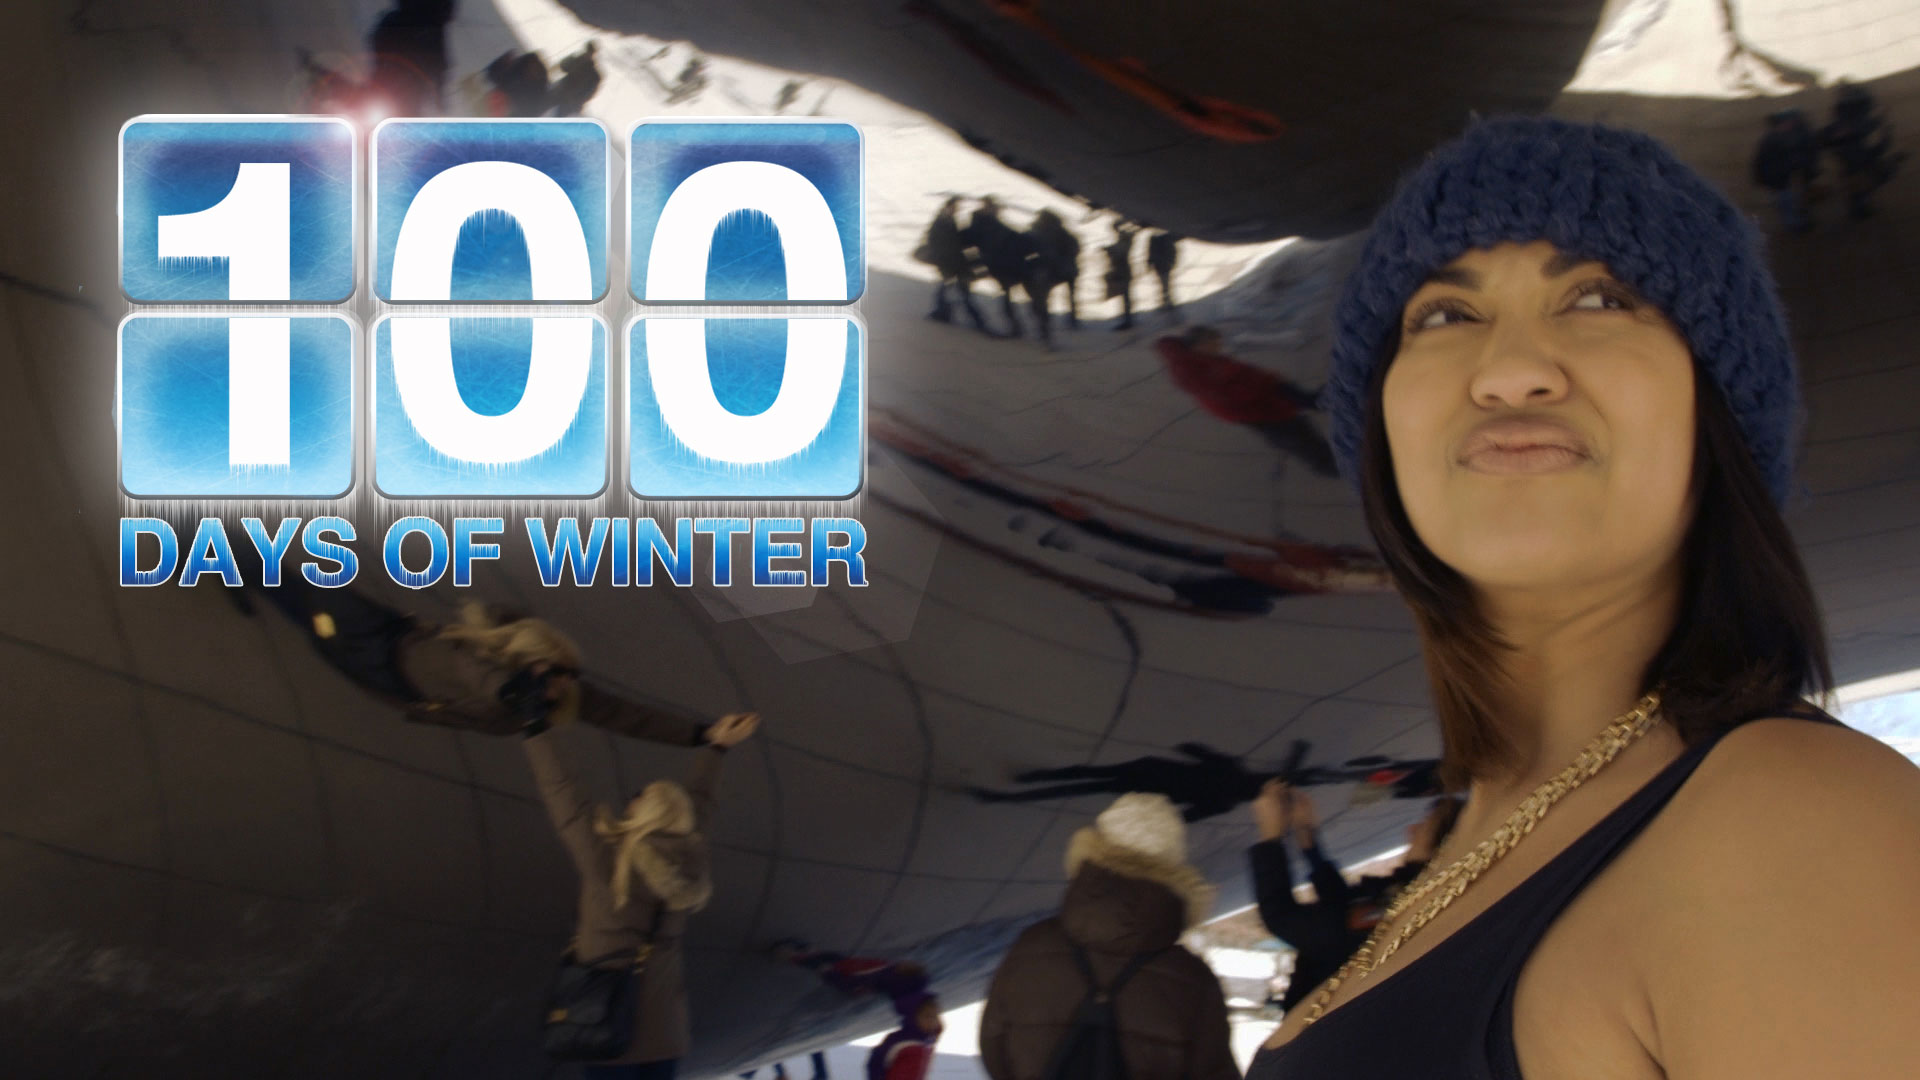 Duchanne – 100 Days of Winter Episode 3